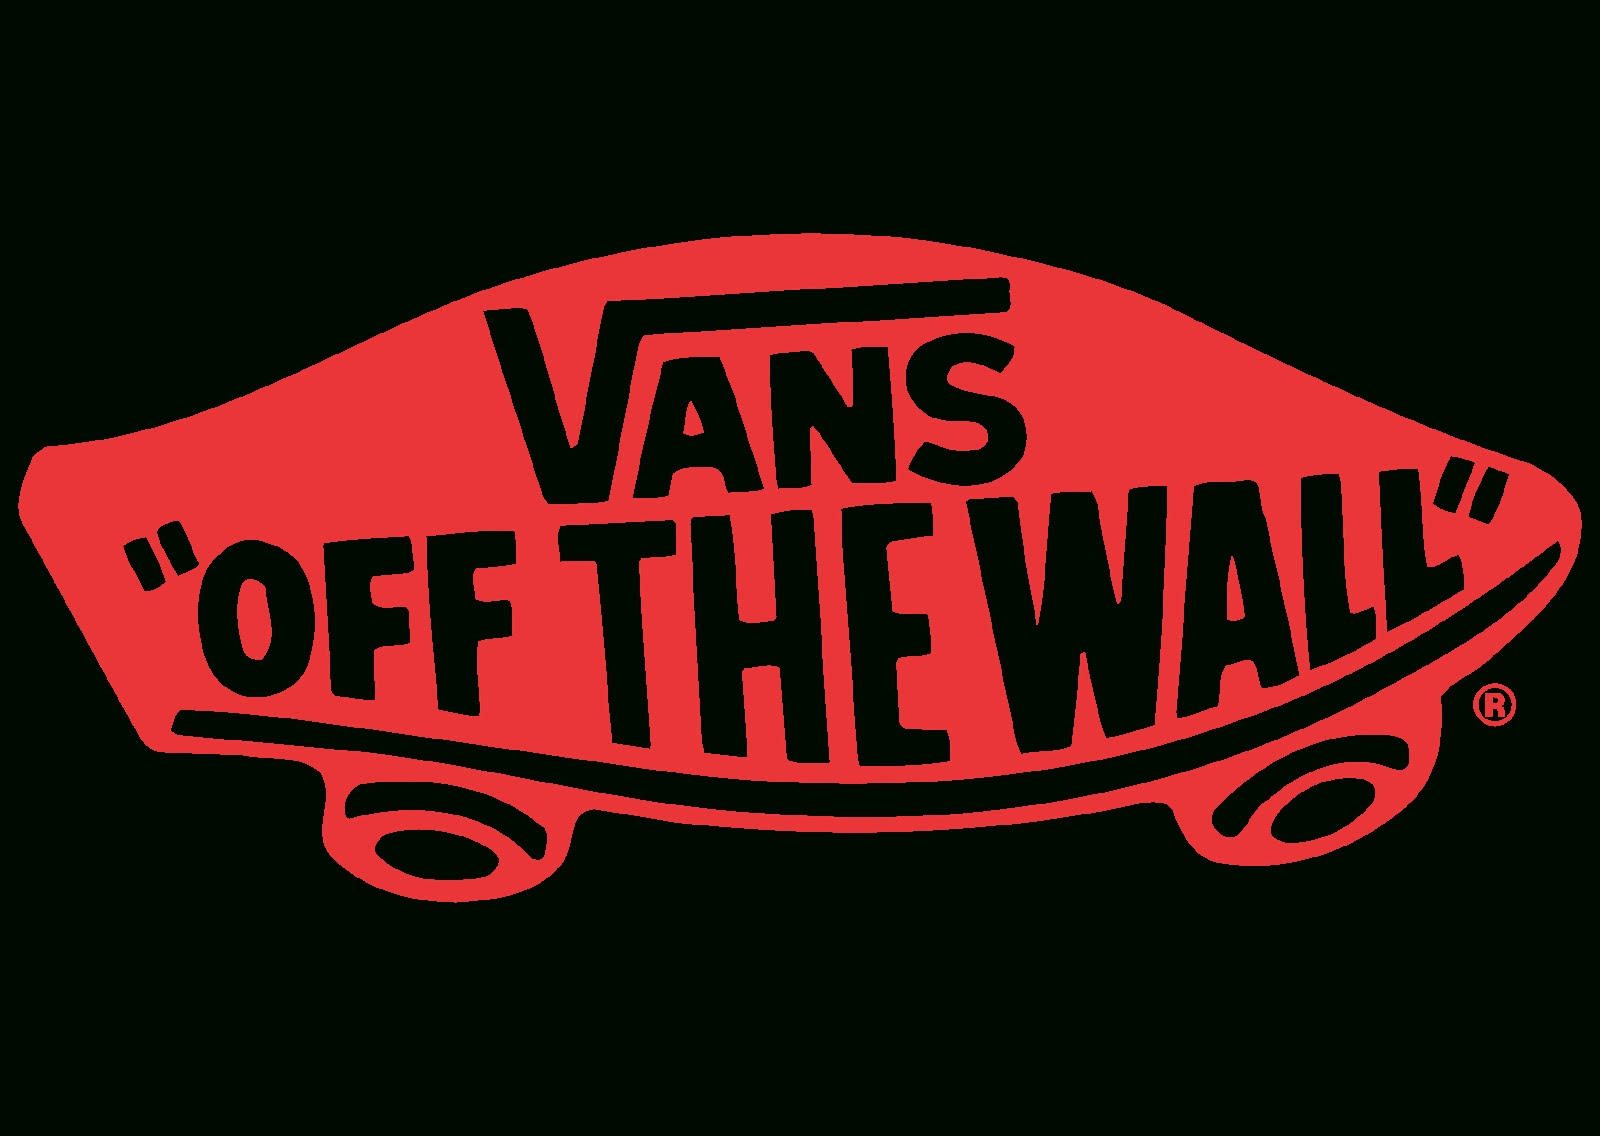 Vans Logo Vector At Getdrawingscom Free For Personal Use Vans